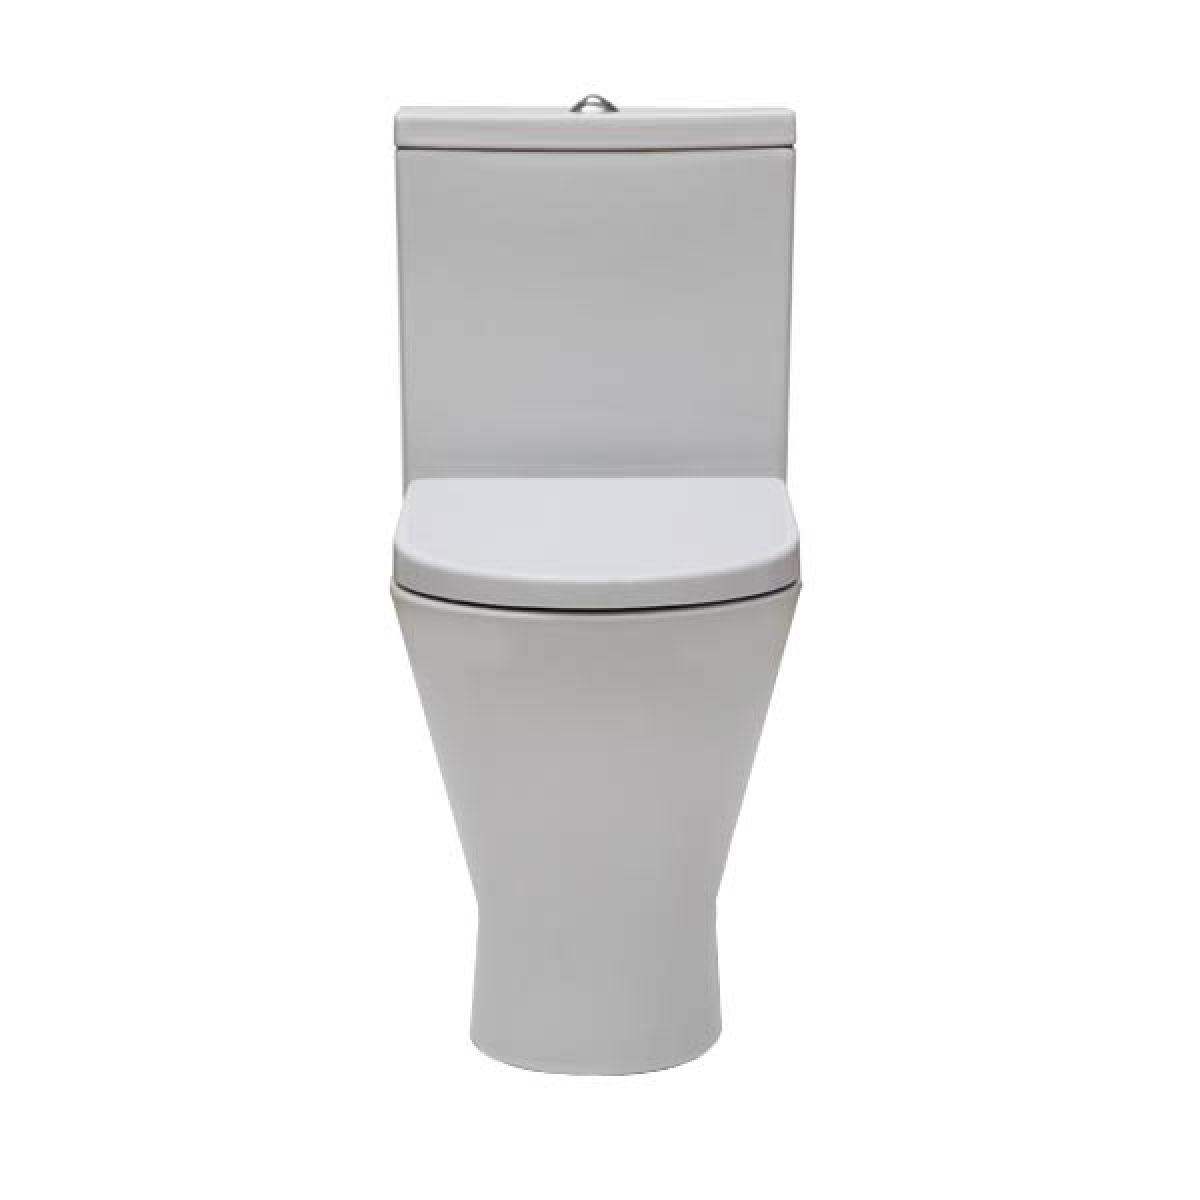 Frontline F60R Close Coupled Toilet with Soft Close Seat